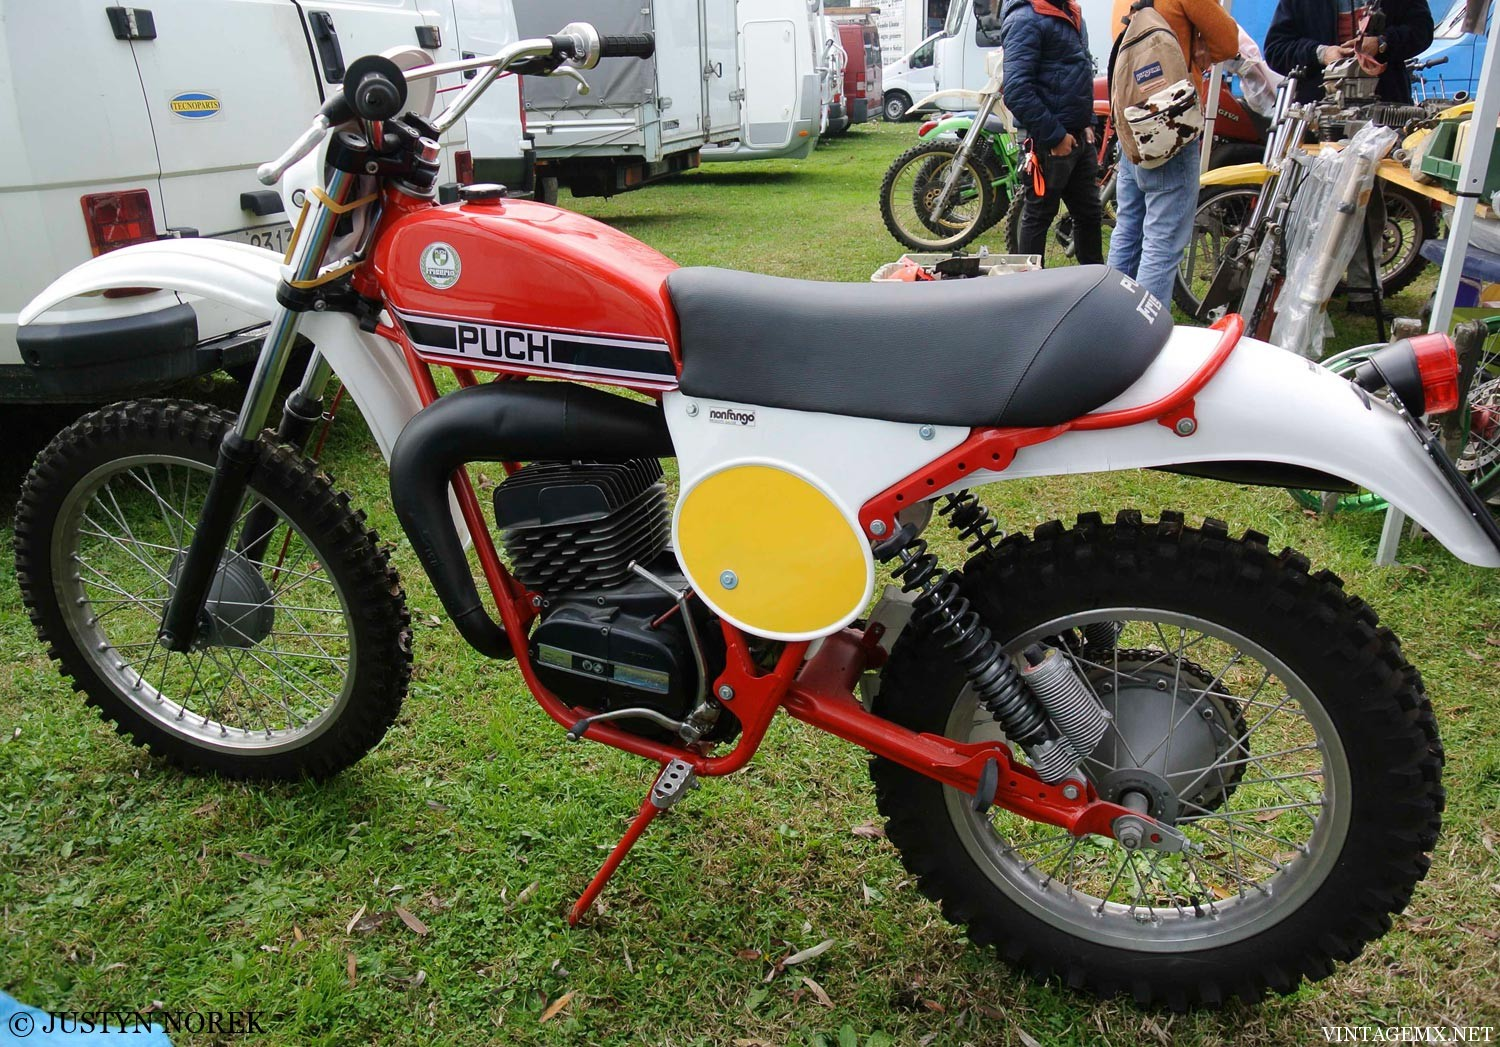 Puch GS 250 F 5 1985 images #121625